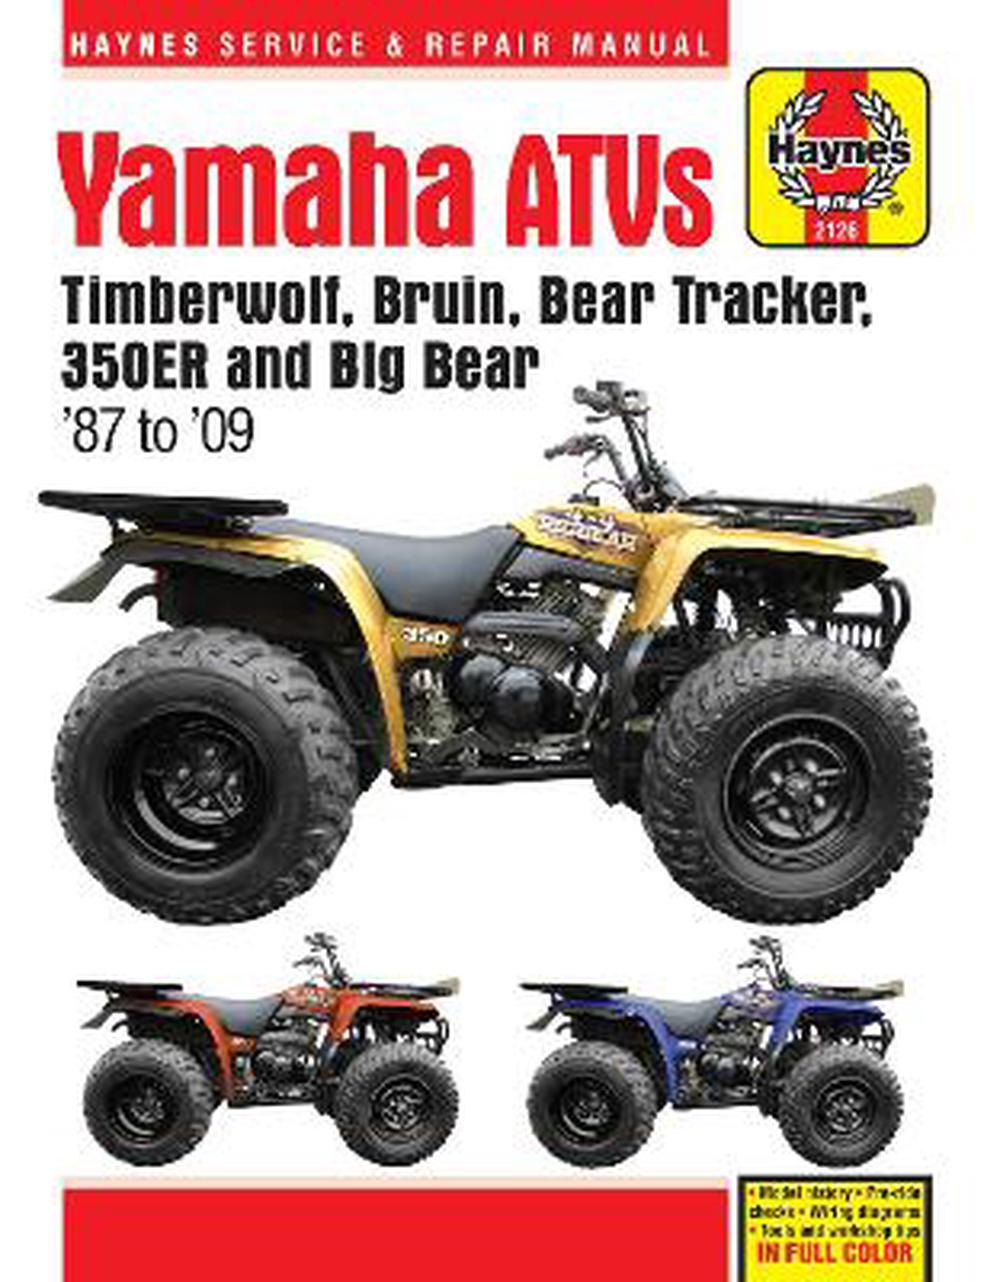 medium resolution of yamaha timberwolf bruin bear tracker 350er big bear atv repair manual by anon paperback 9781620921135 buy online at the nile